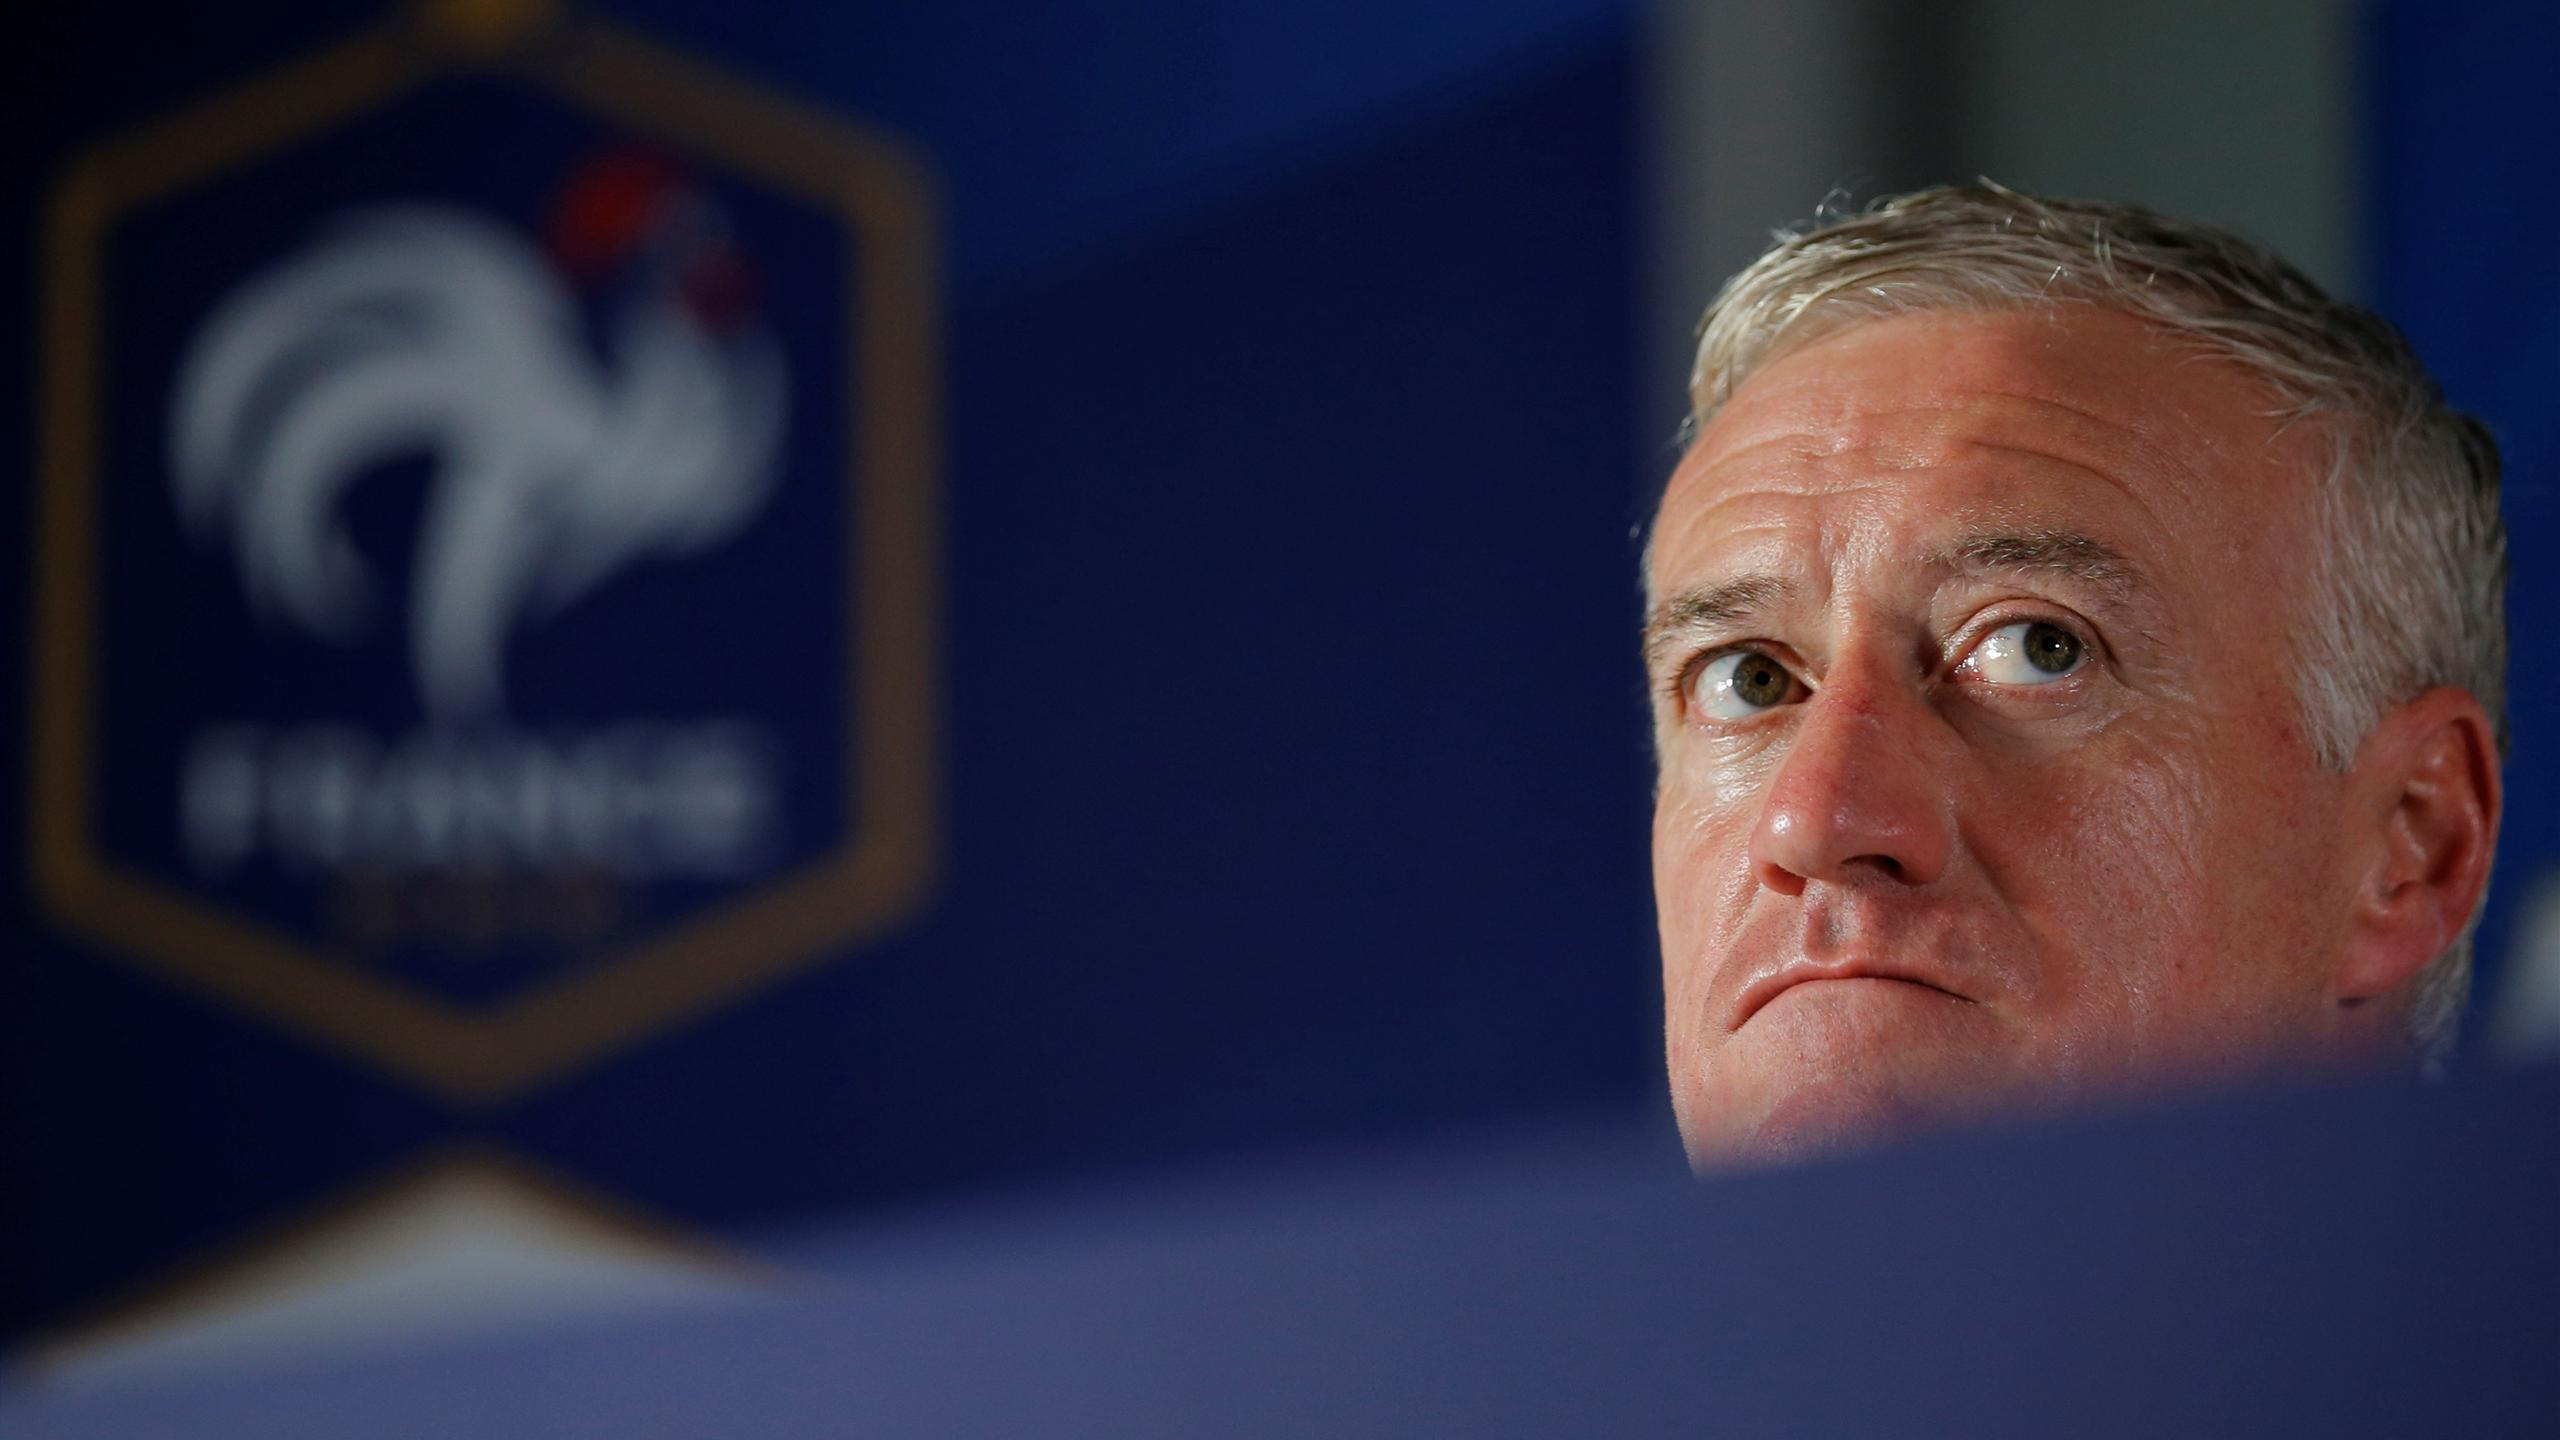 France's national soccer team coach Didier Deschamps attends a news conference